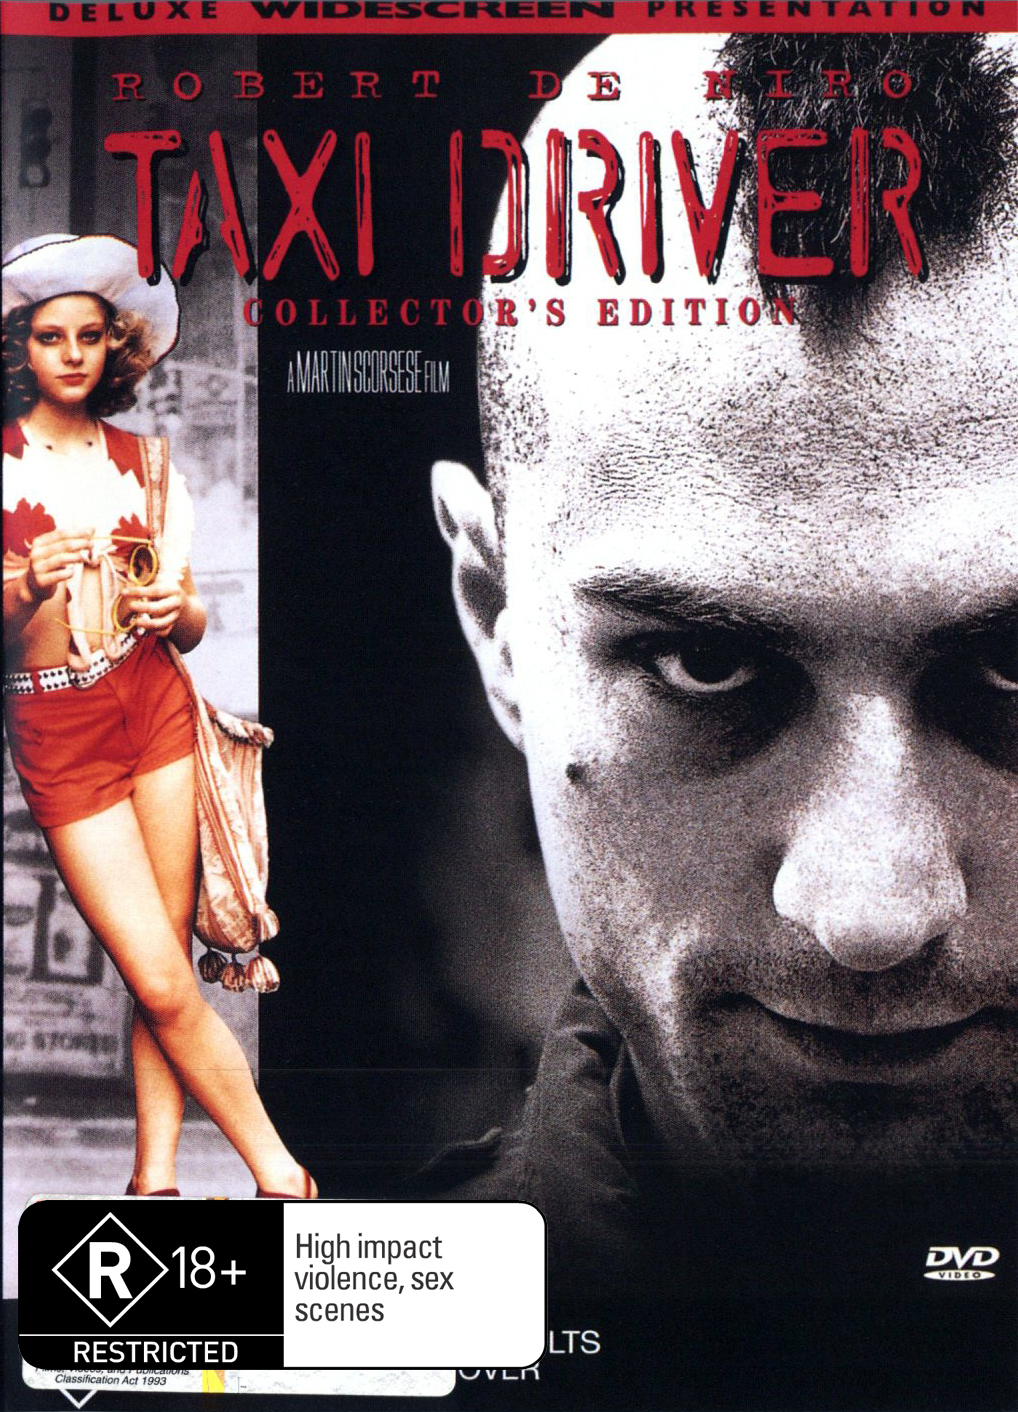 Taxi Driver (1976) (Collector's Edition) on DVD image